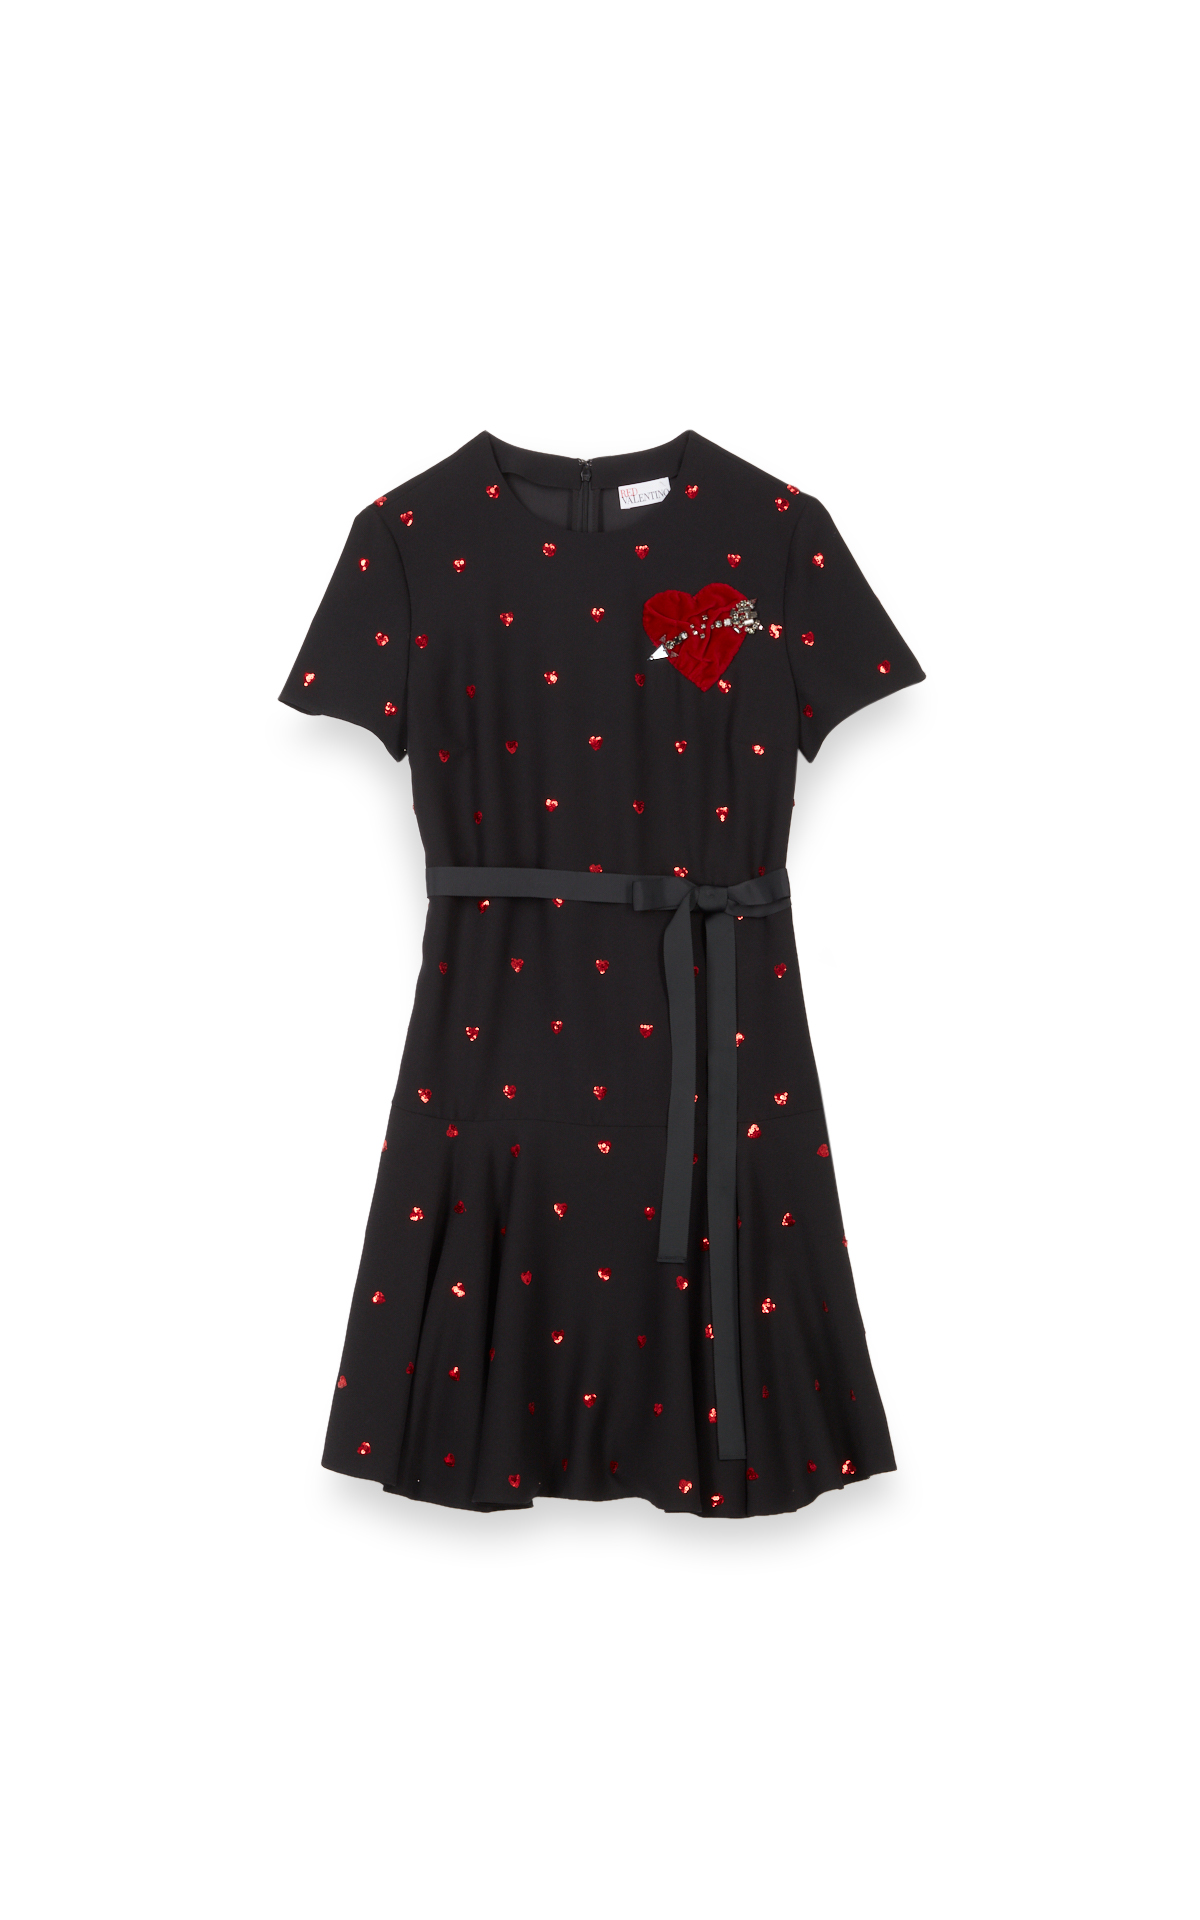 la vallée village RedValentino Short red and black dress